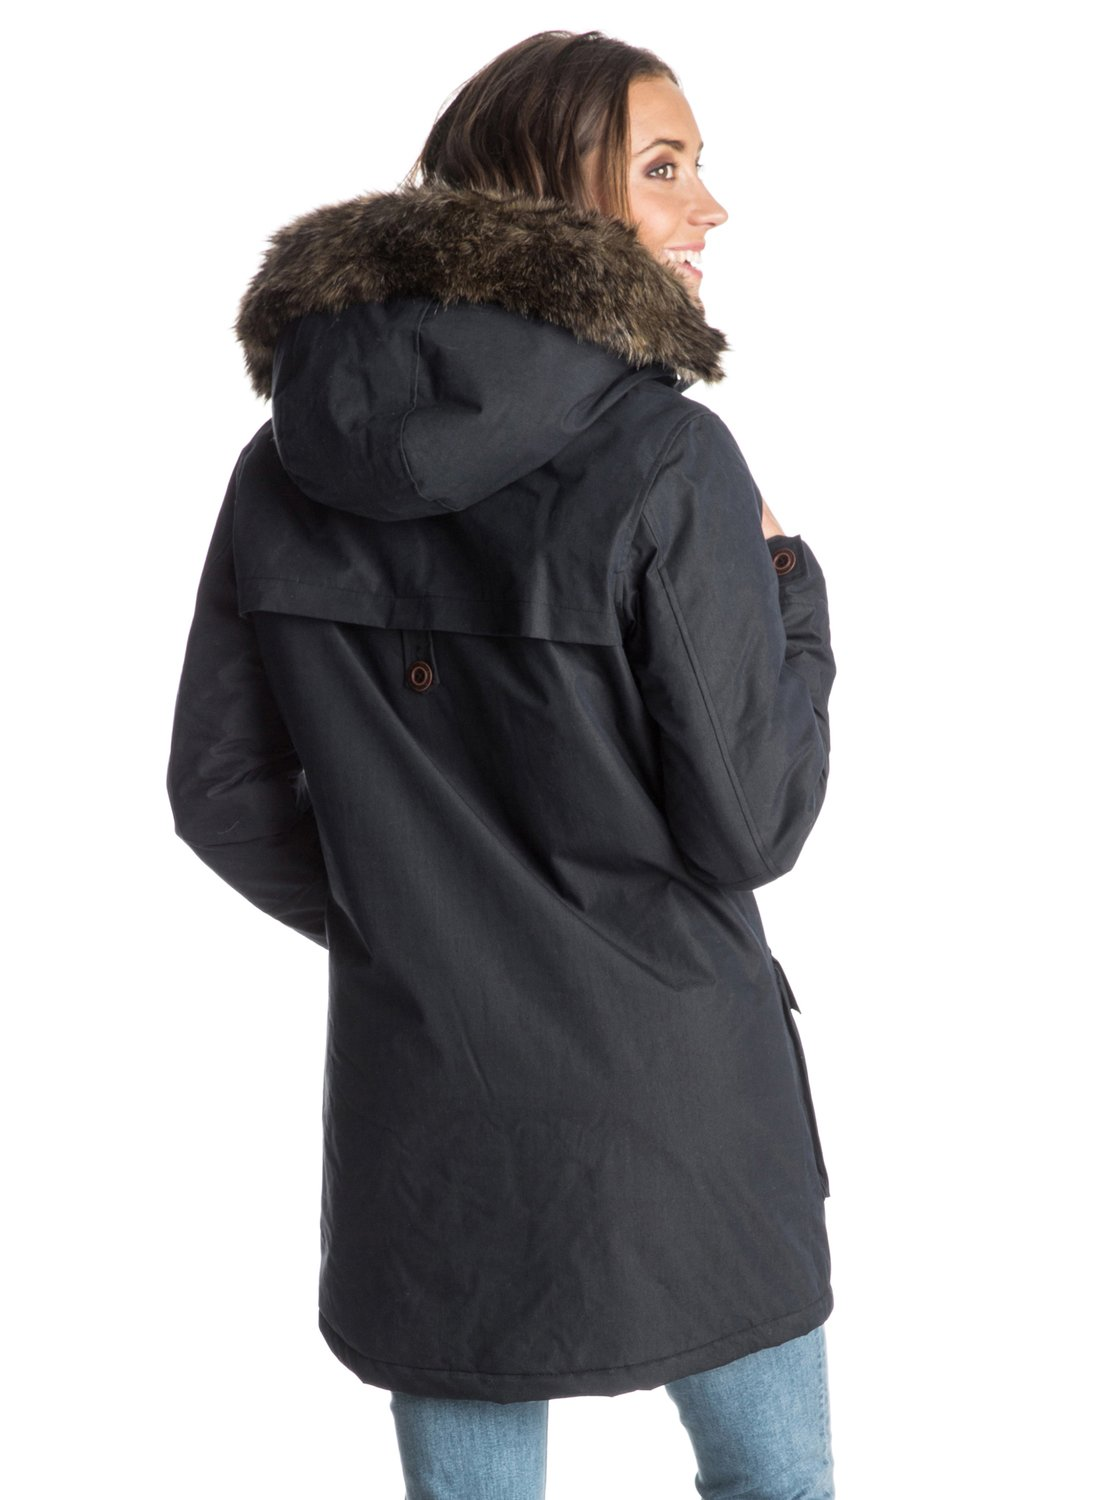 Shop for women's designer cold weahter coats at smileqbl.gq Shop for puffers, winter coats, warm coats and more. Free shipping & returns.